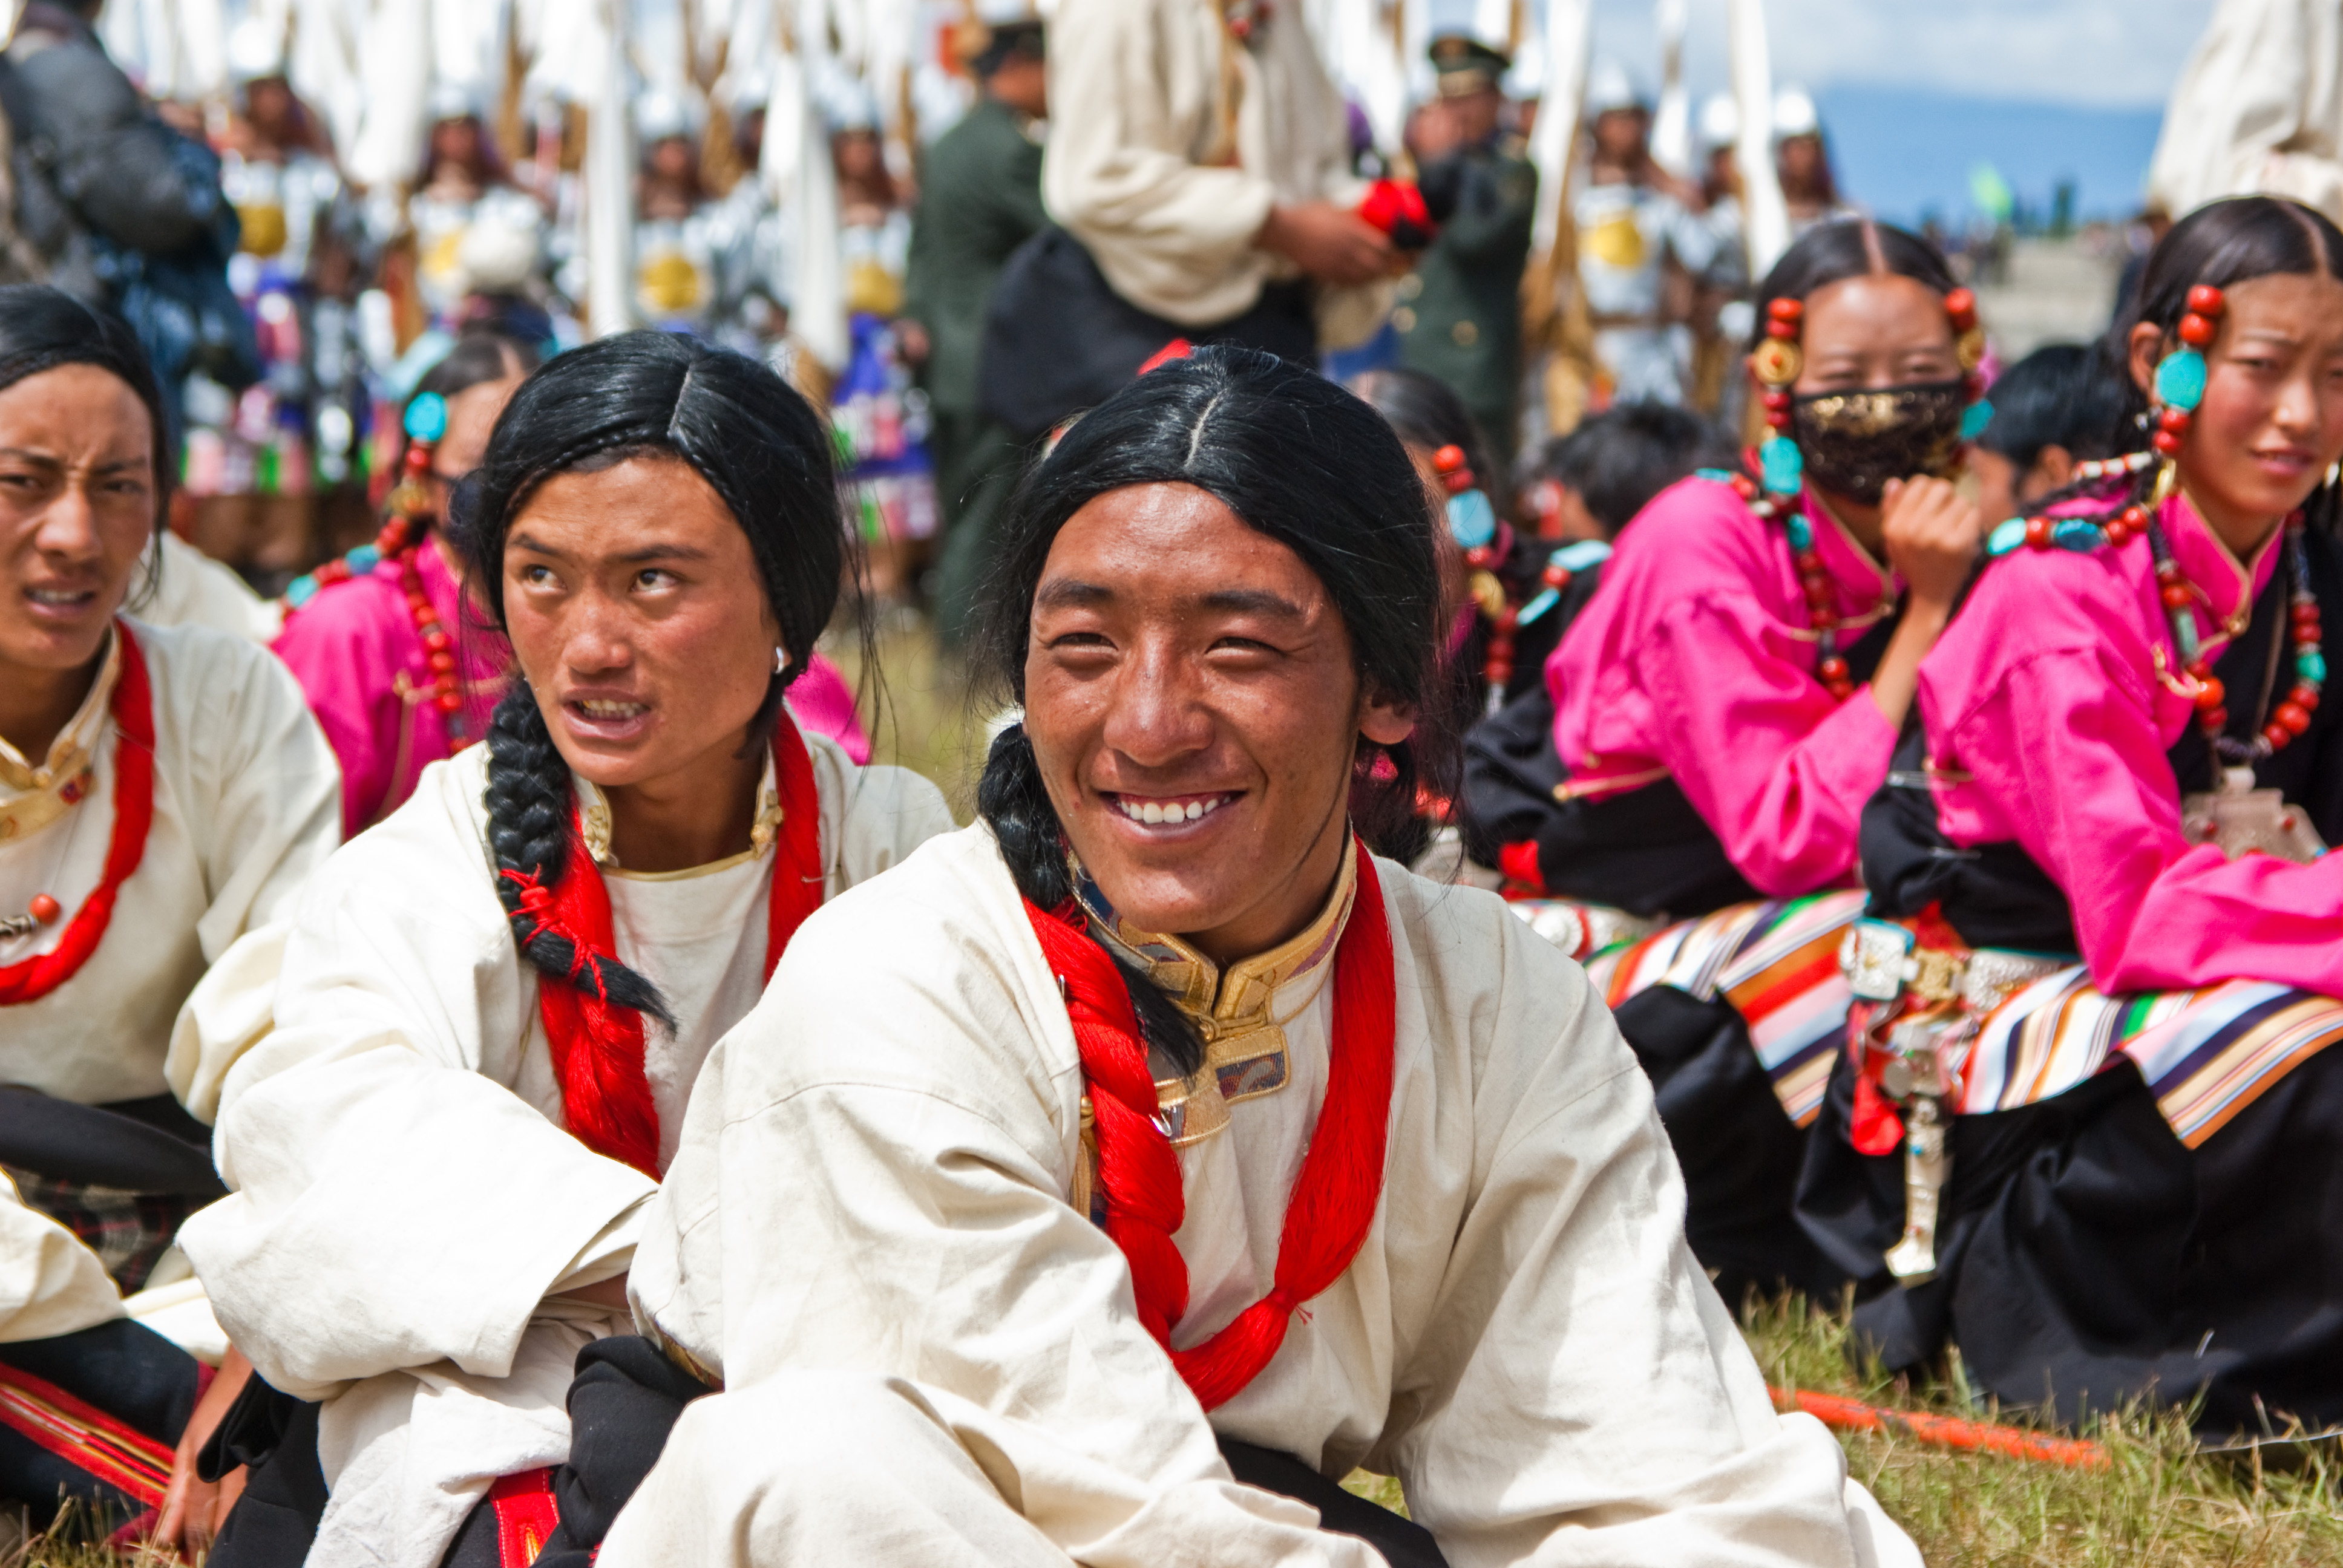 People of Tibet6